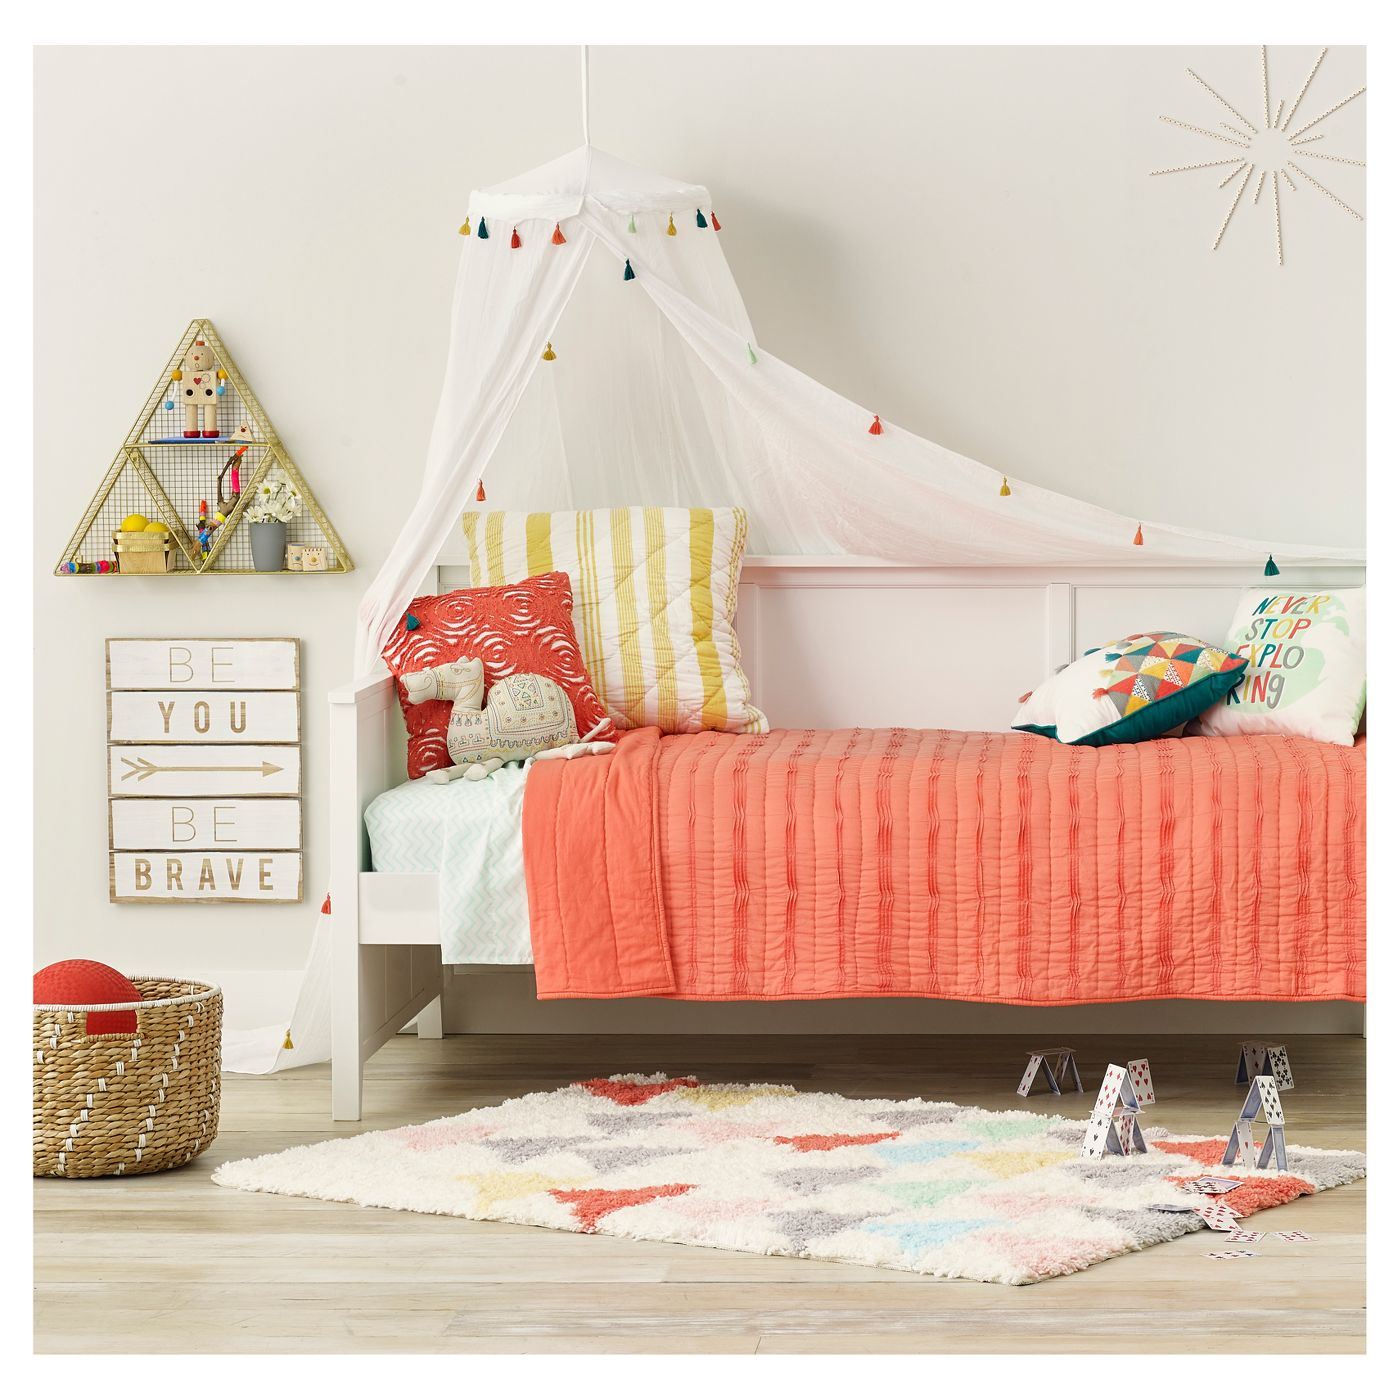 Canopy in a stylish bedroom for kids